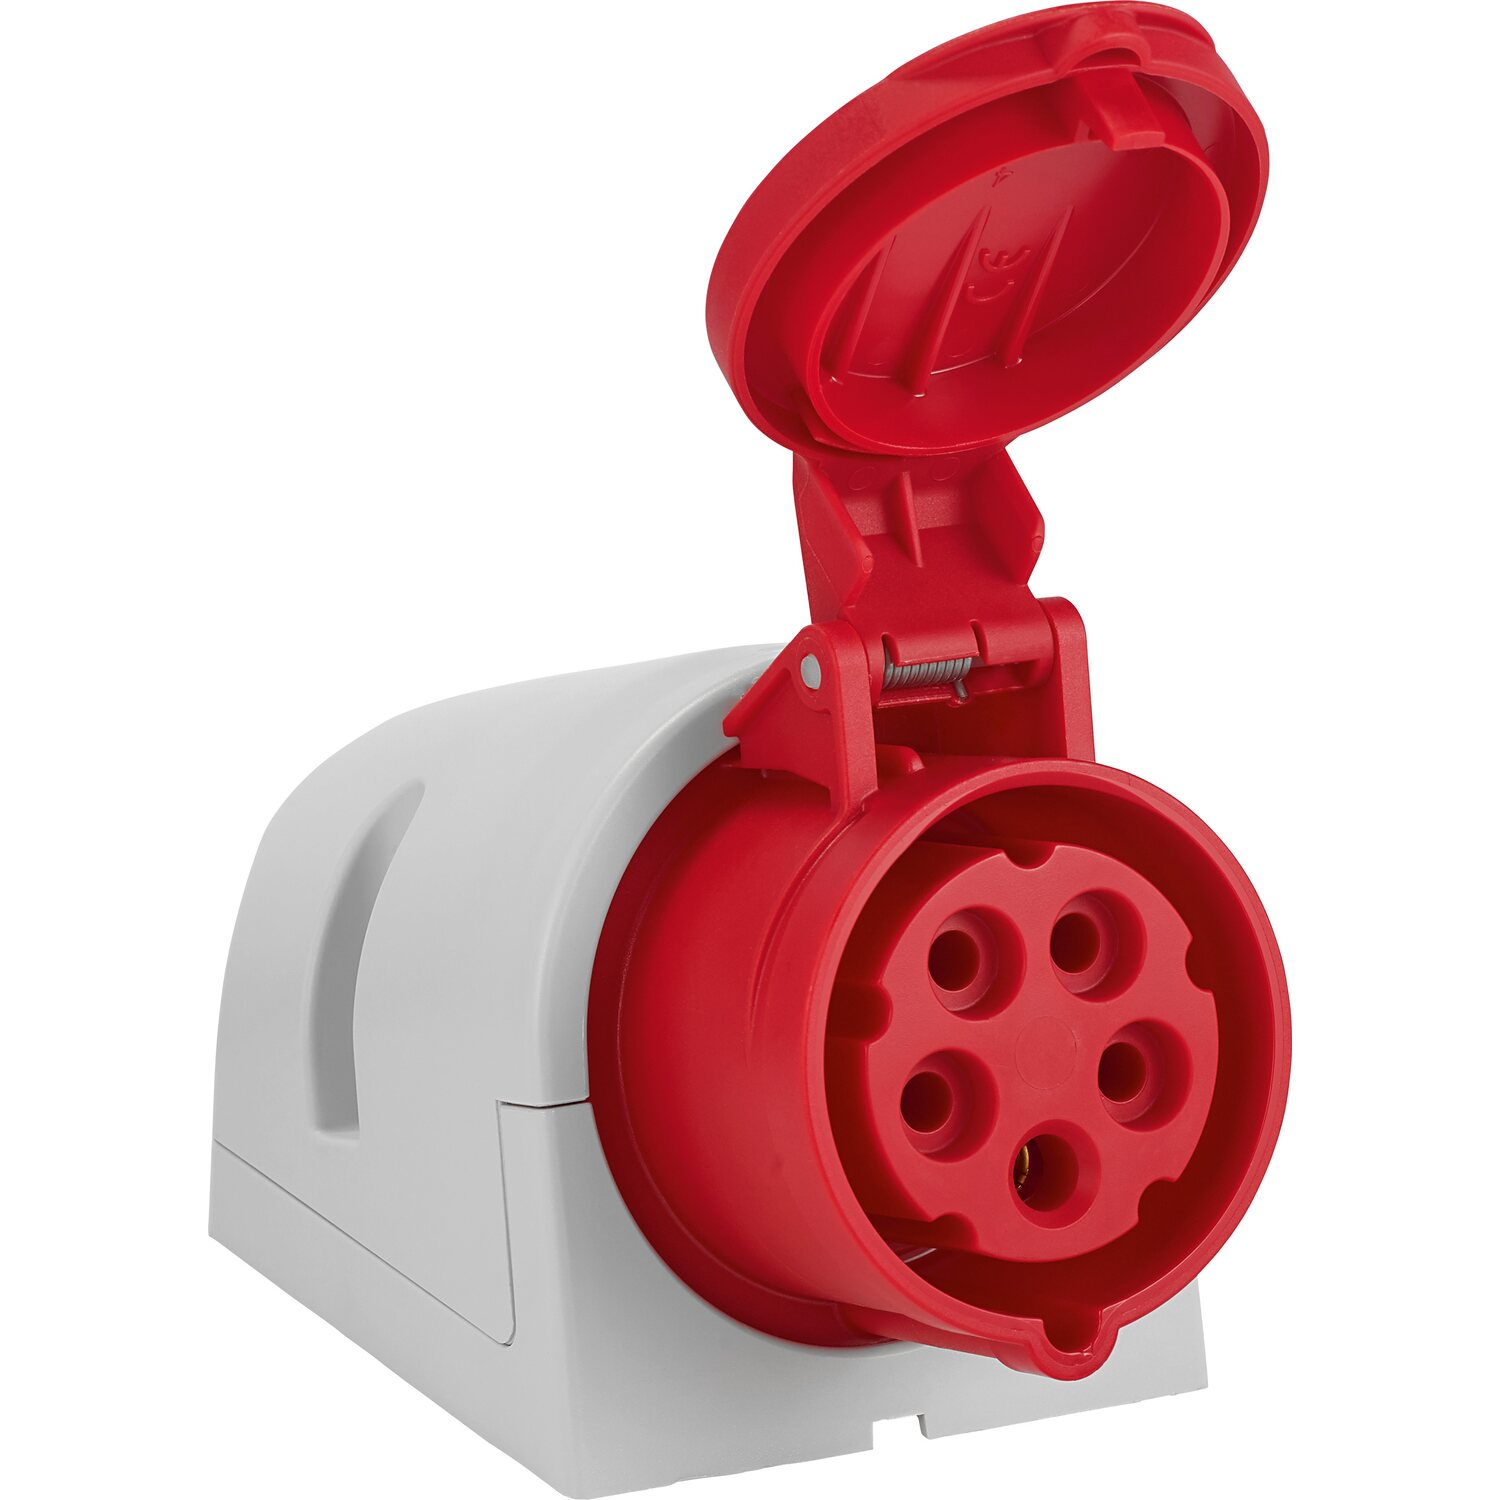 CEE Wandsteckdose 5-polig IP44 16 A Rot